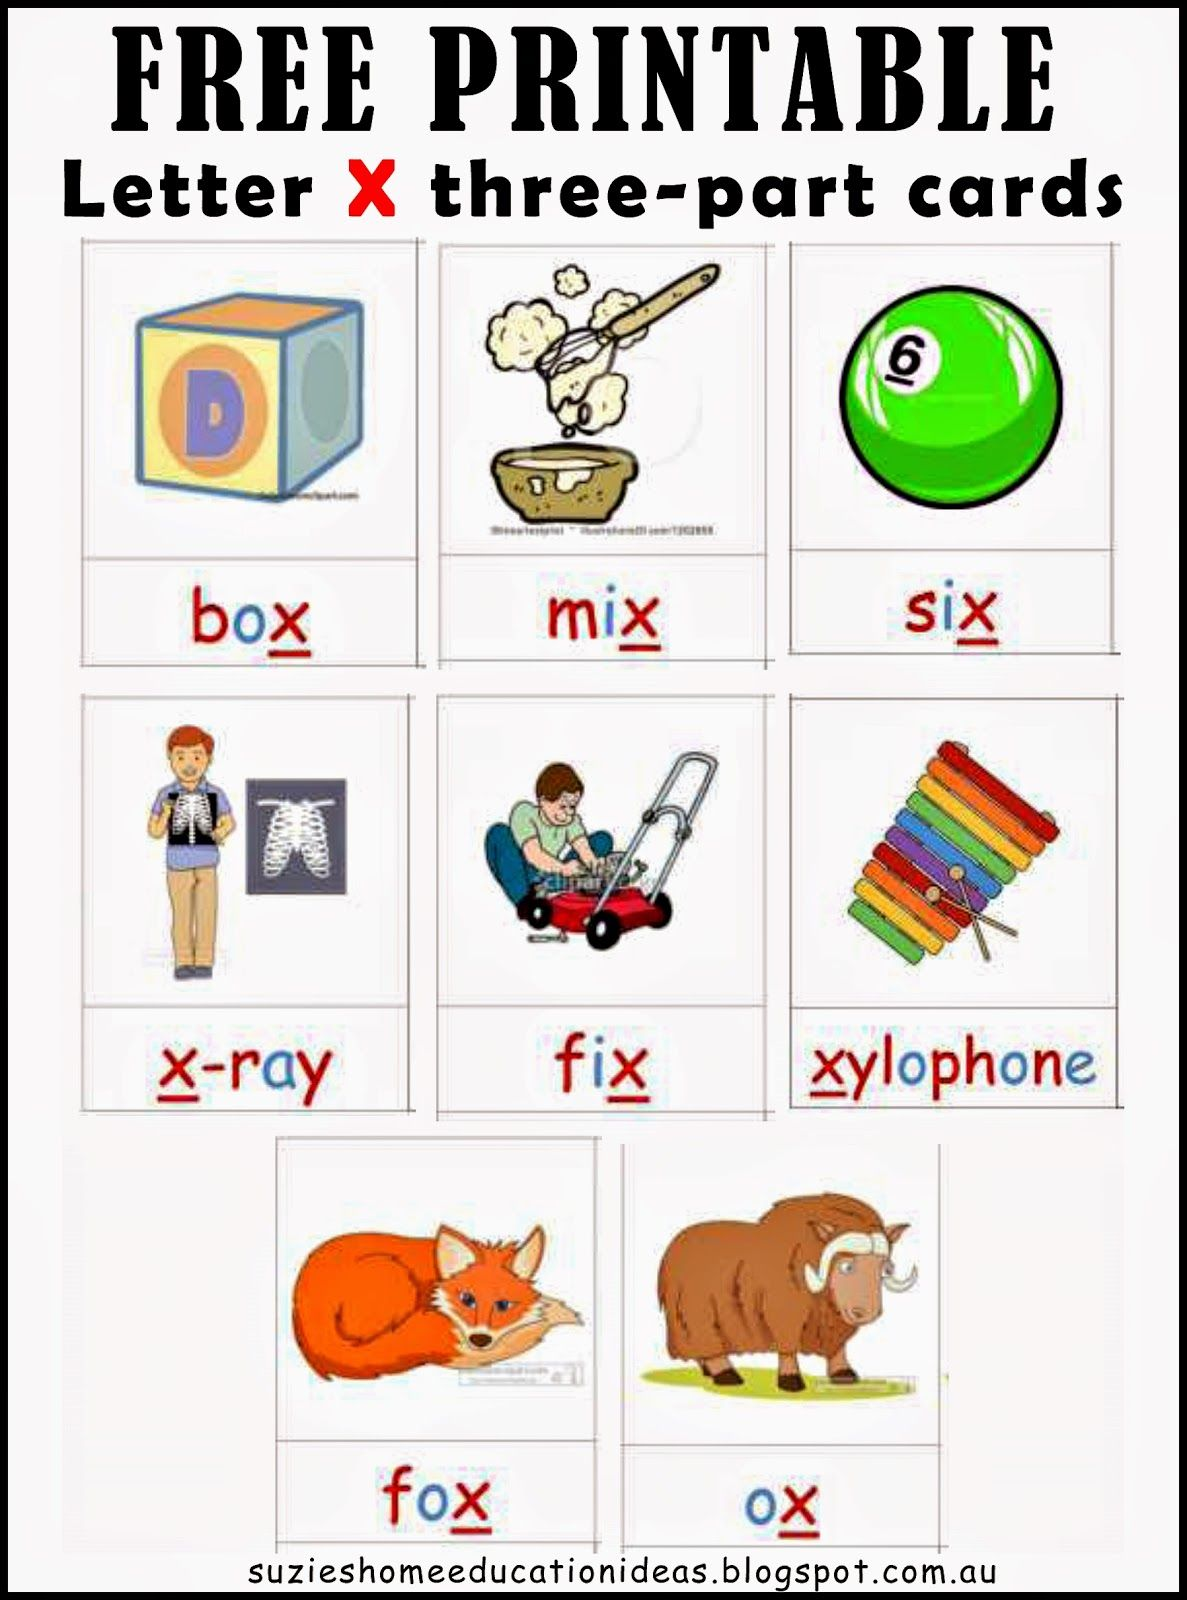 Worksheets X Words For Kids word search on words beginning with double letters x a list letter printable cards and activity ideas